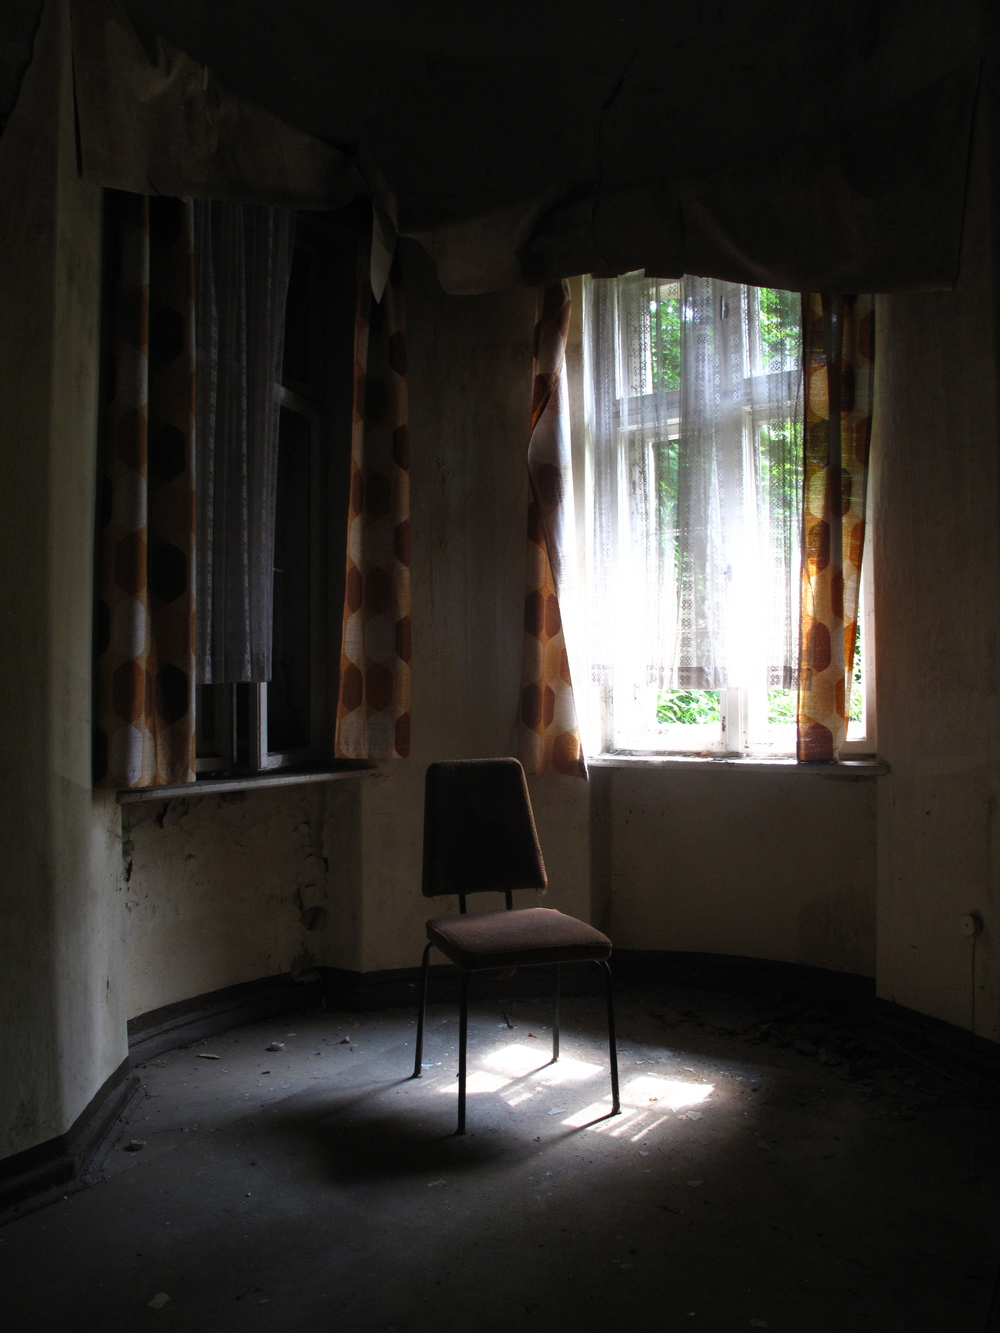 A dark room and a chair inside an abandoned sanatorium.